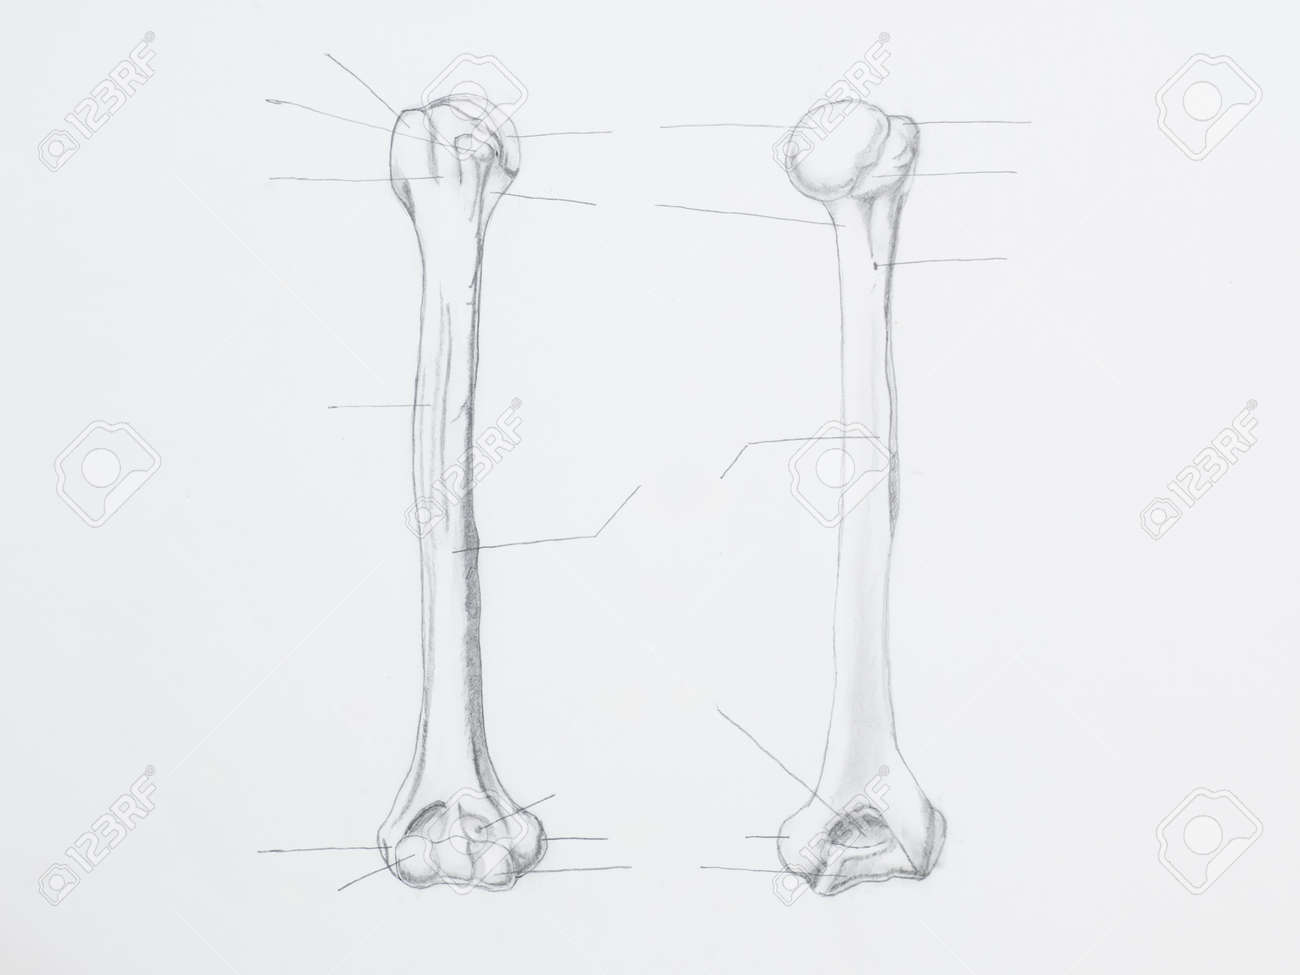 Detail of humerus pencil drawing on white paper Stock Photo - 23653511